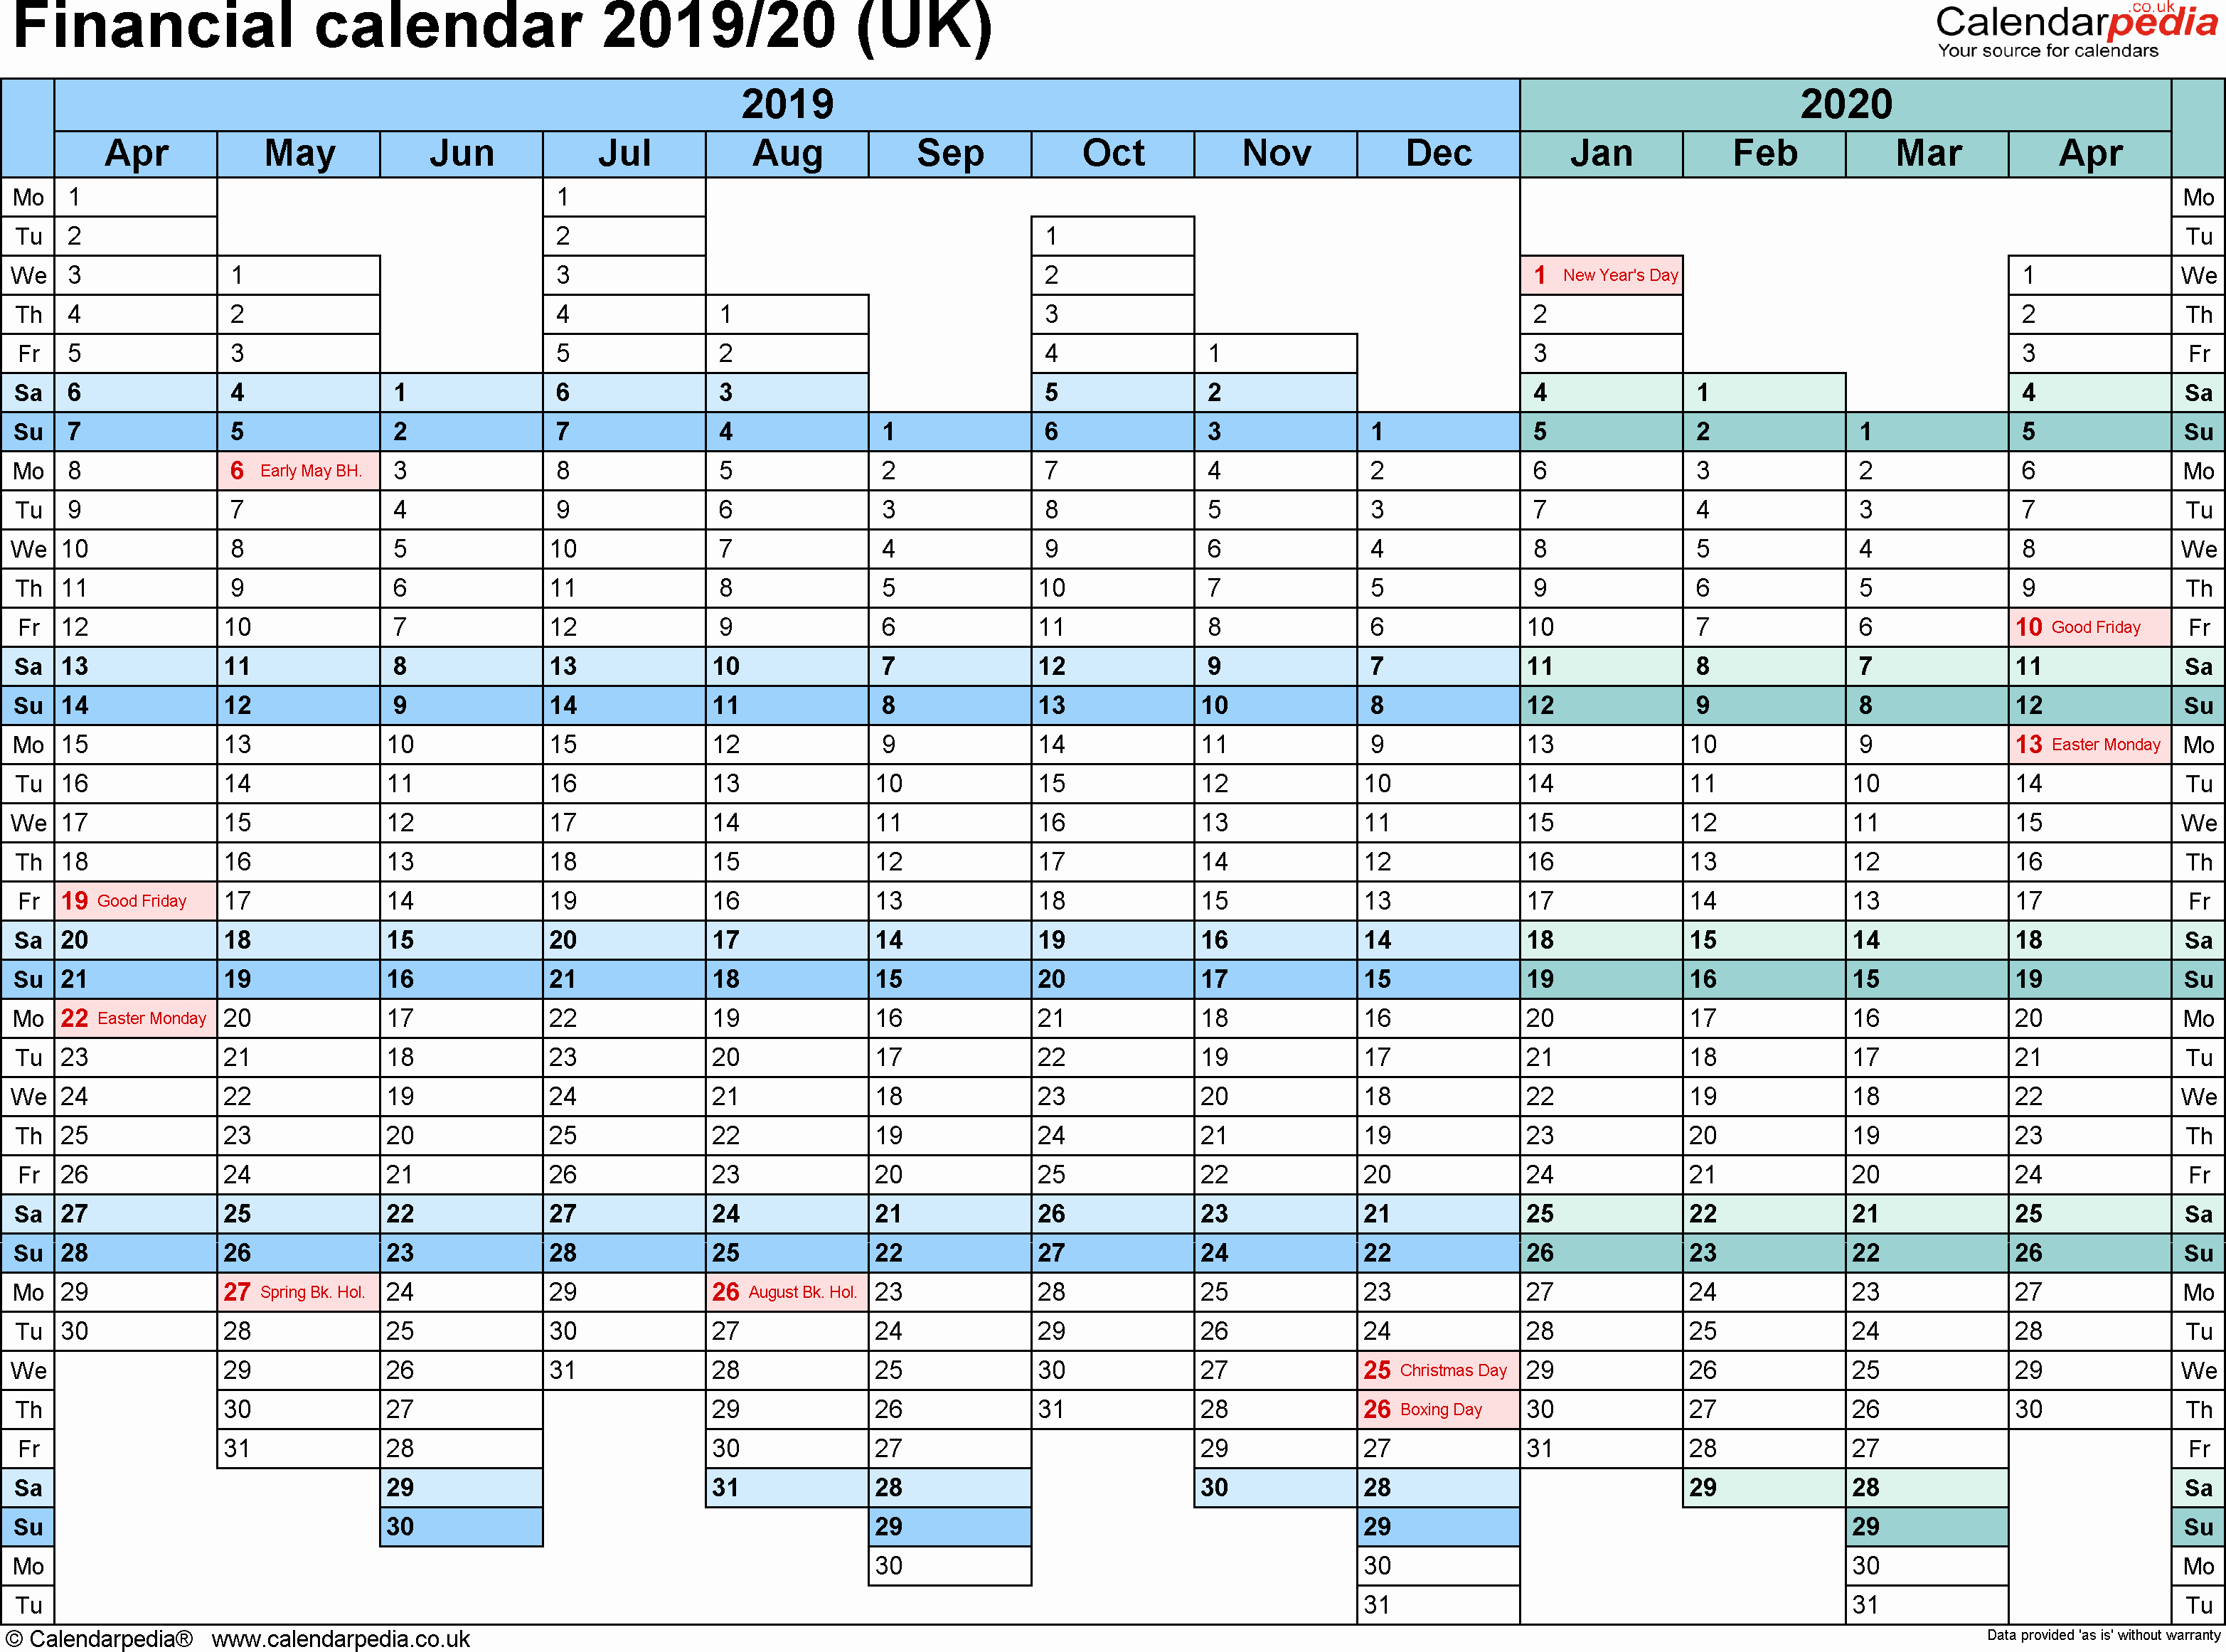 Excel Payroll Template 2019 Awesome Financial Calendars 2019 20 Uk In Microsoft Excel format